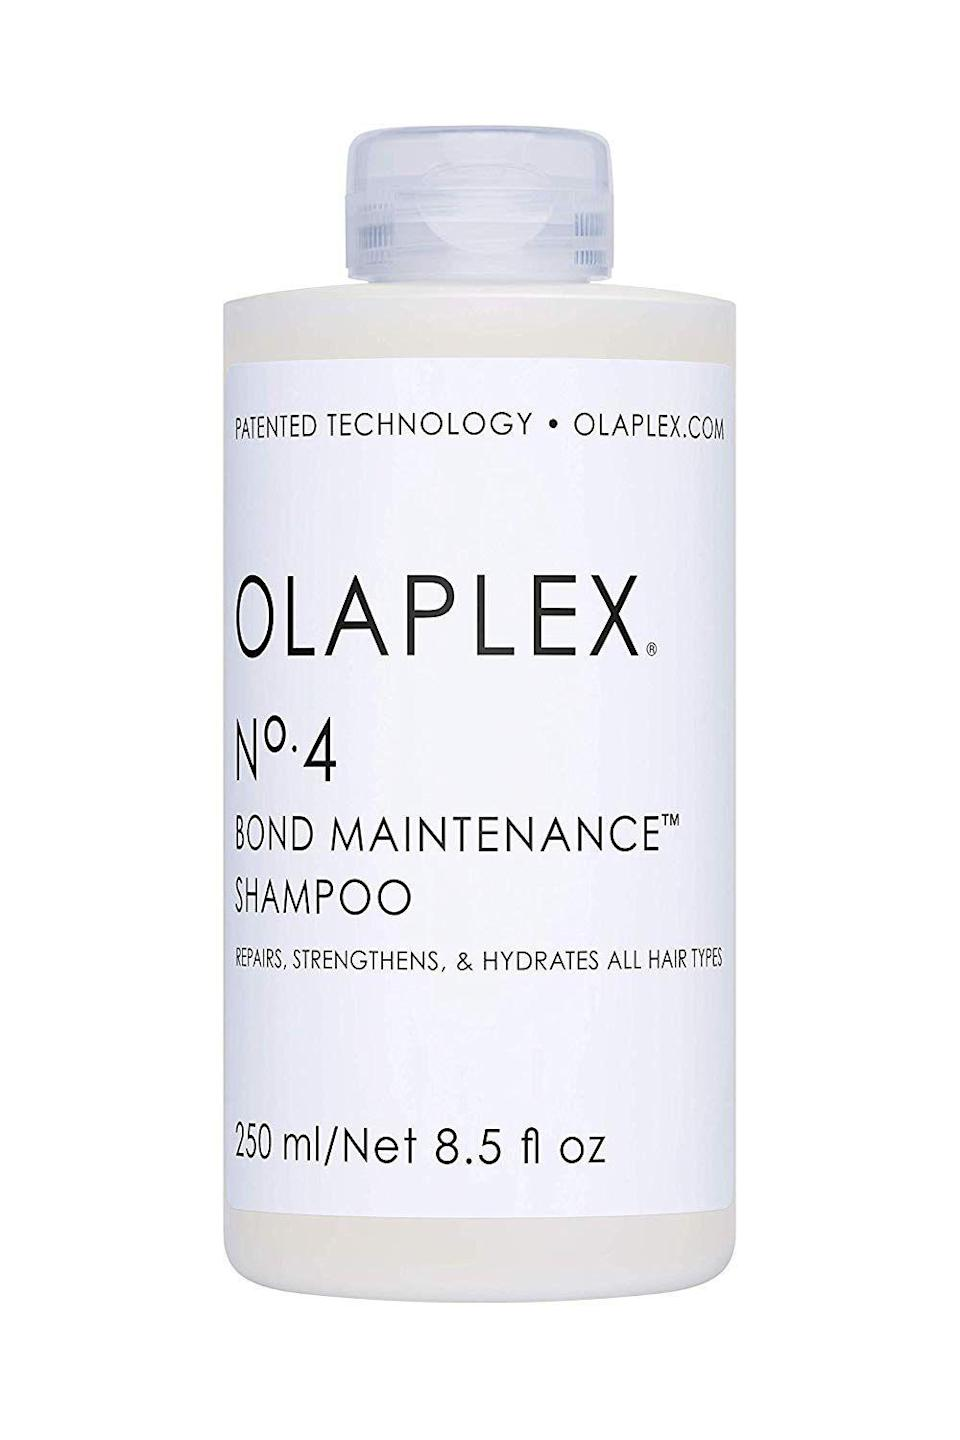 """<p><strong>Olaplex</strong></p><p>sephora.com</p><p><strong>$14.00</strong></p><p><a href=""""https://go.redirectingat.com?id=74968X1596630&url=https%3A%2F%2Fwww.sephora.com%2Fproduct%2Fno-4-bond-maintenance-shampoo-P433172&sref=https%3A%2F%2Fwww.cosmopolitan.com%2Fstyle-beauty%2Fbeauty%2Fg20874938%2Fbest-shampoo-dry-damaged-hair%2F"""" rel=""""nofollow noopener"""" target=""""_blank"""" data-ylk=""""slk:Shop Now"""" class=""""link rapid-noclick-resp"""">Shop Now</a></p><p>There's a reason why every colorist/stylist loves this <a href=""""https://www.cosmopolitan.com/style-beauty/beauty/g2149/best-shampoo-conditioner/"""" rel=""""nofollow noopener"""" target=""""_blank"""" data-ylk=""""slk:shampoo"""" class=""""link rapid-noclick-resp"""">shampoo</a> for super-damaged hair: It <strong>uses a</strong> <strong>patented molecule to rebuild broken hair bonds</strong> (an inevitable side effect of bleaching and chemical treatments) to give you stronger hair that retains more moisture. It's the closet thing to a second chance for your hair.</p>"""